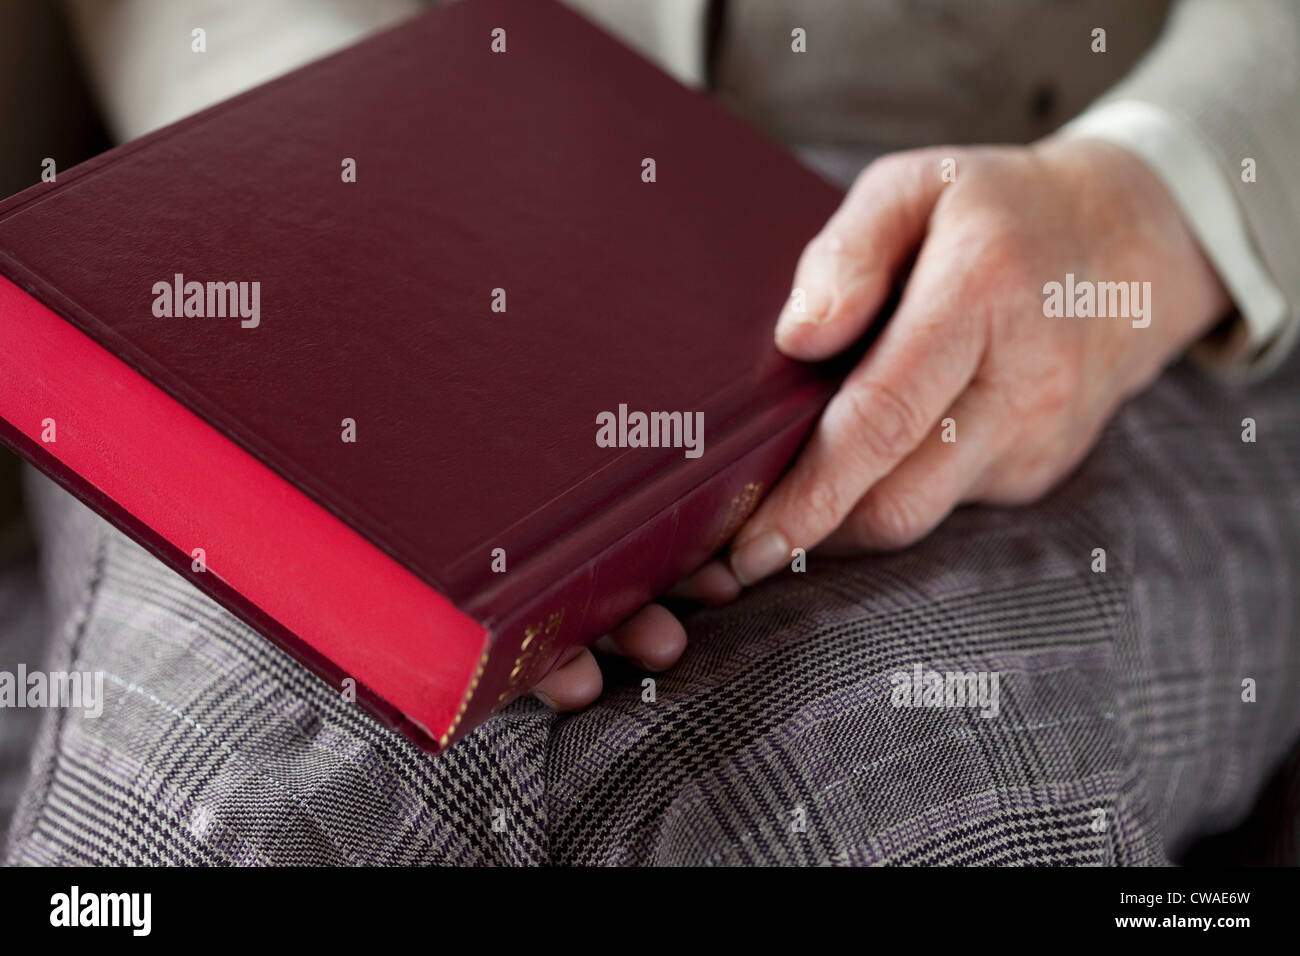 Old Anatomy Book Stock Photos & Old Anatomy Book Stock Images - Alamy